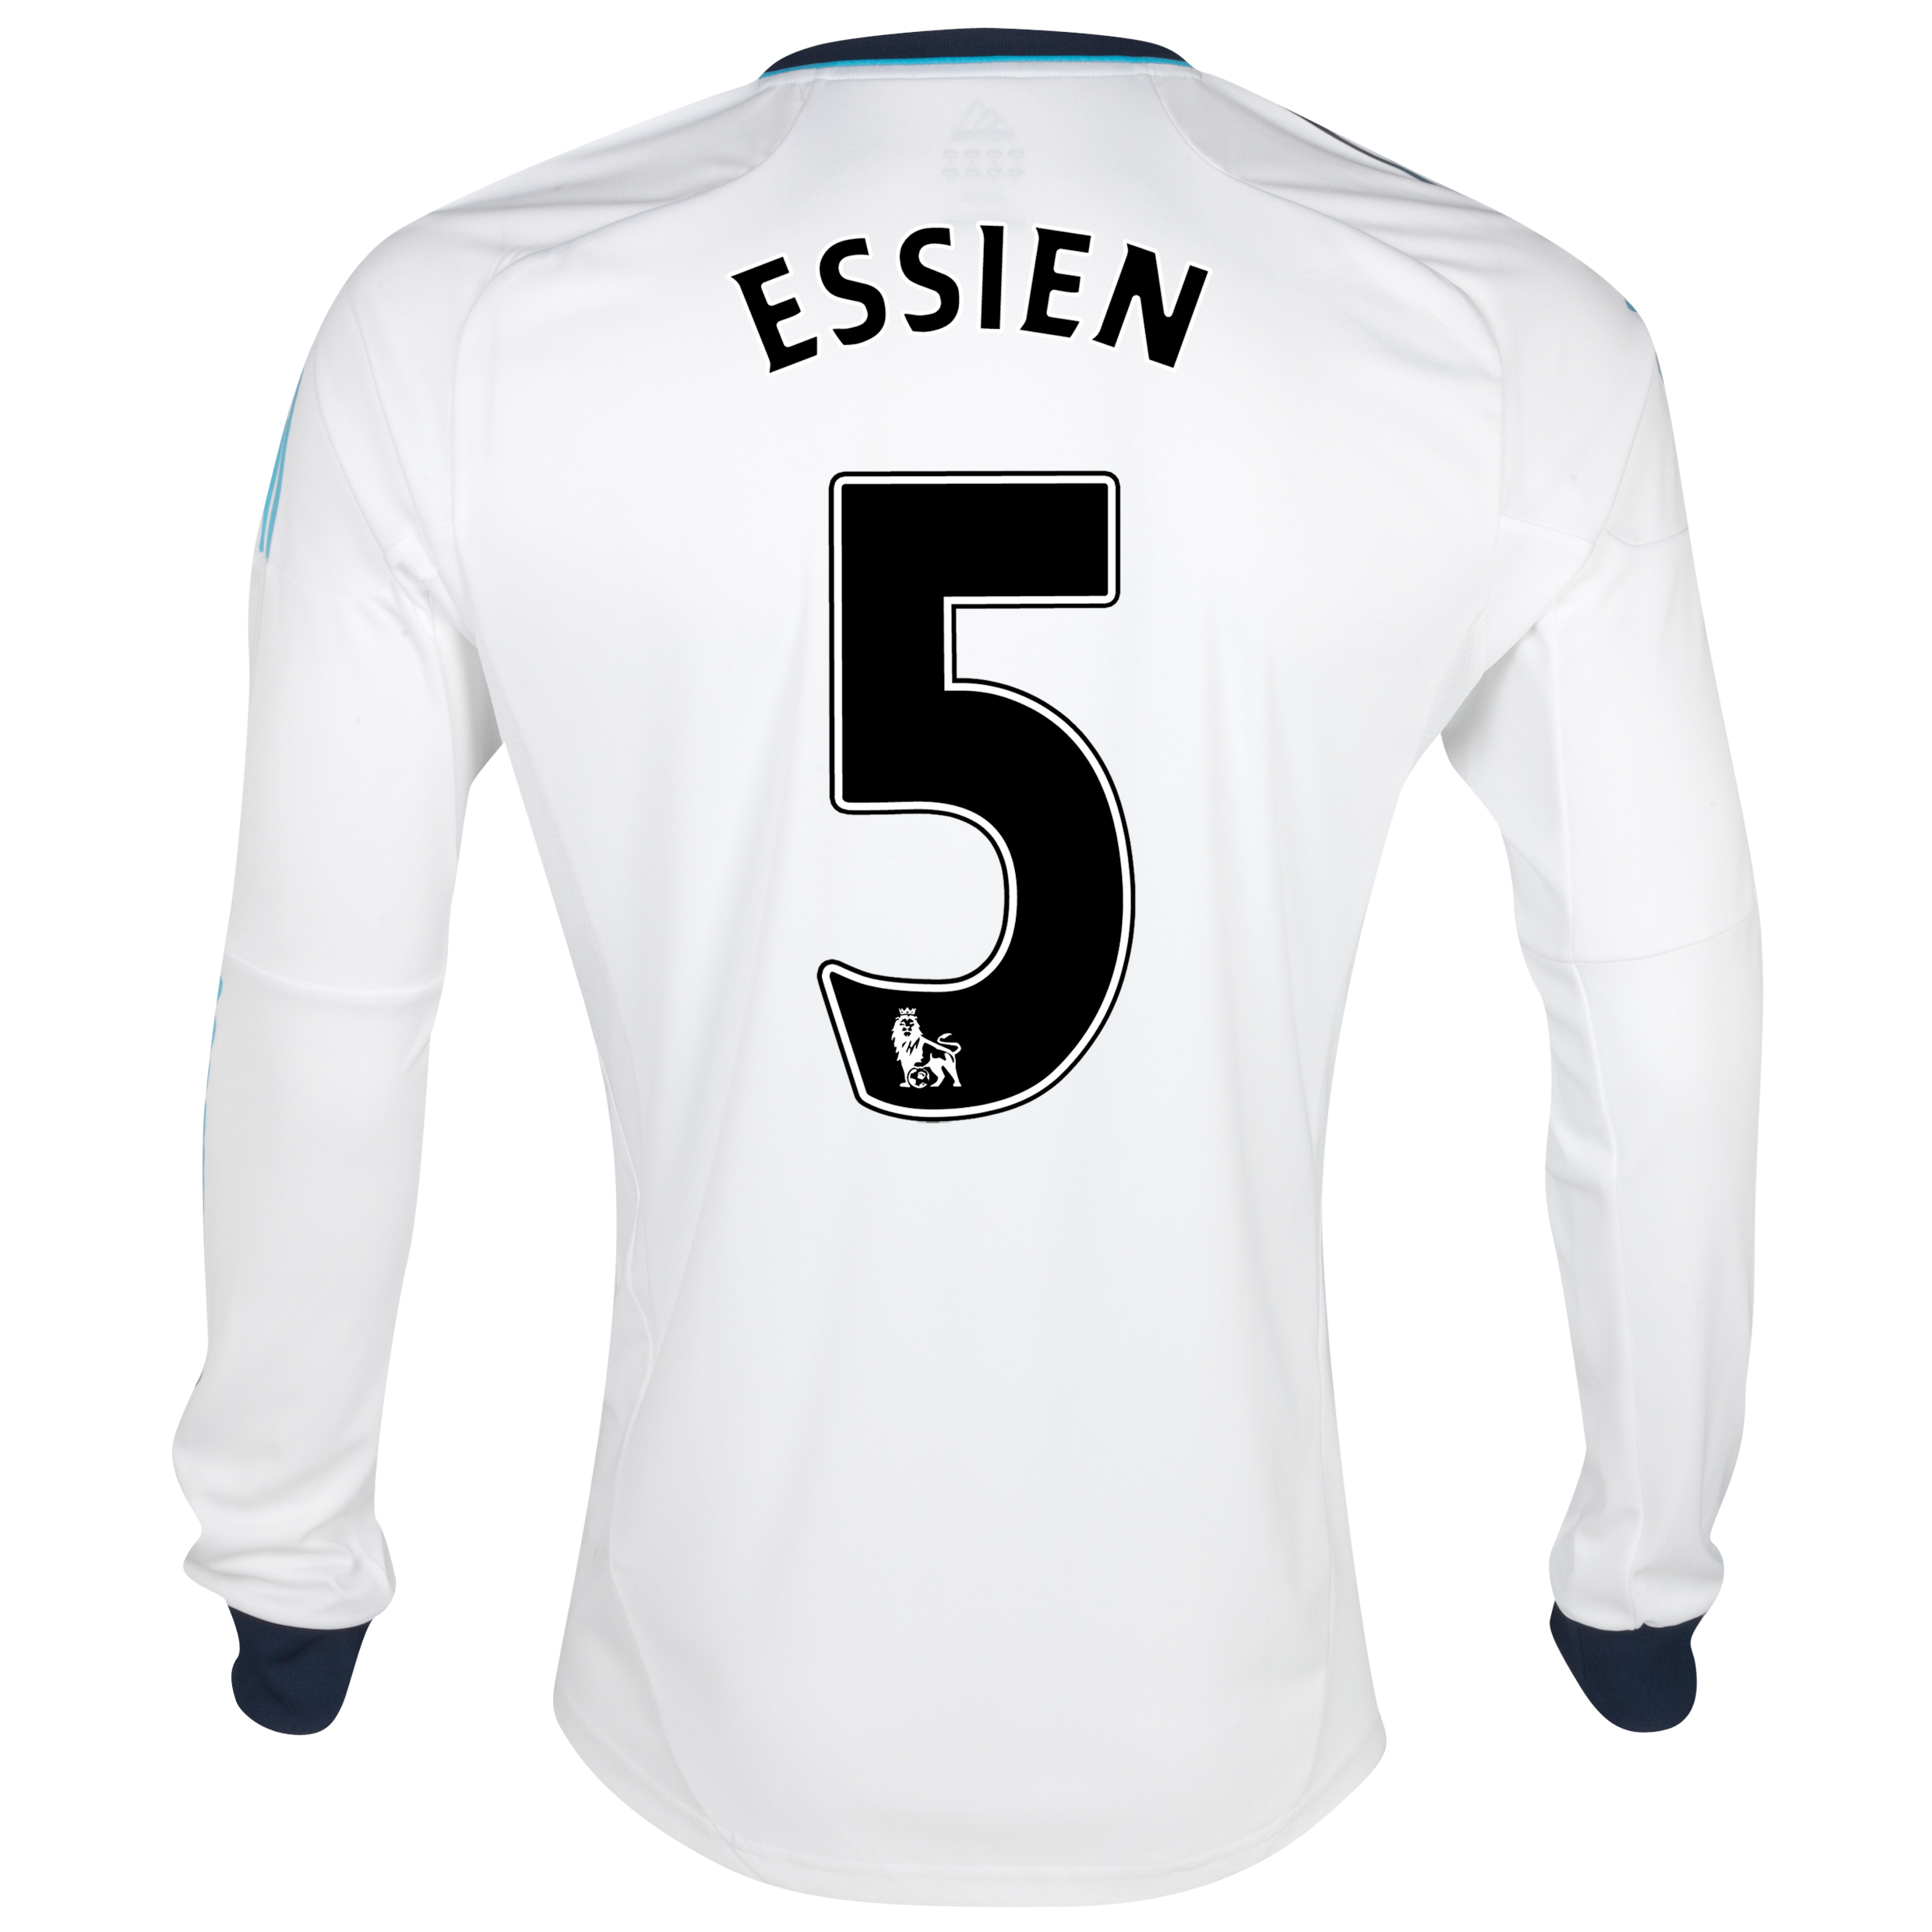 Chelsea Away Shirt 2012/13 - Long Sleeved  - Youths with Essien 5 printing